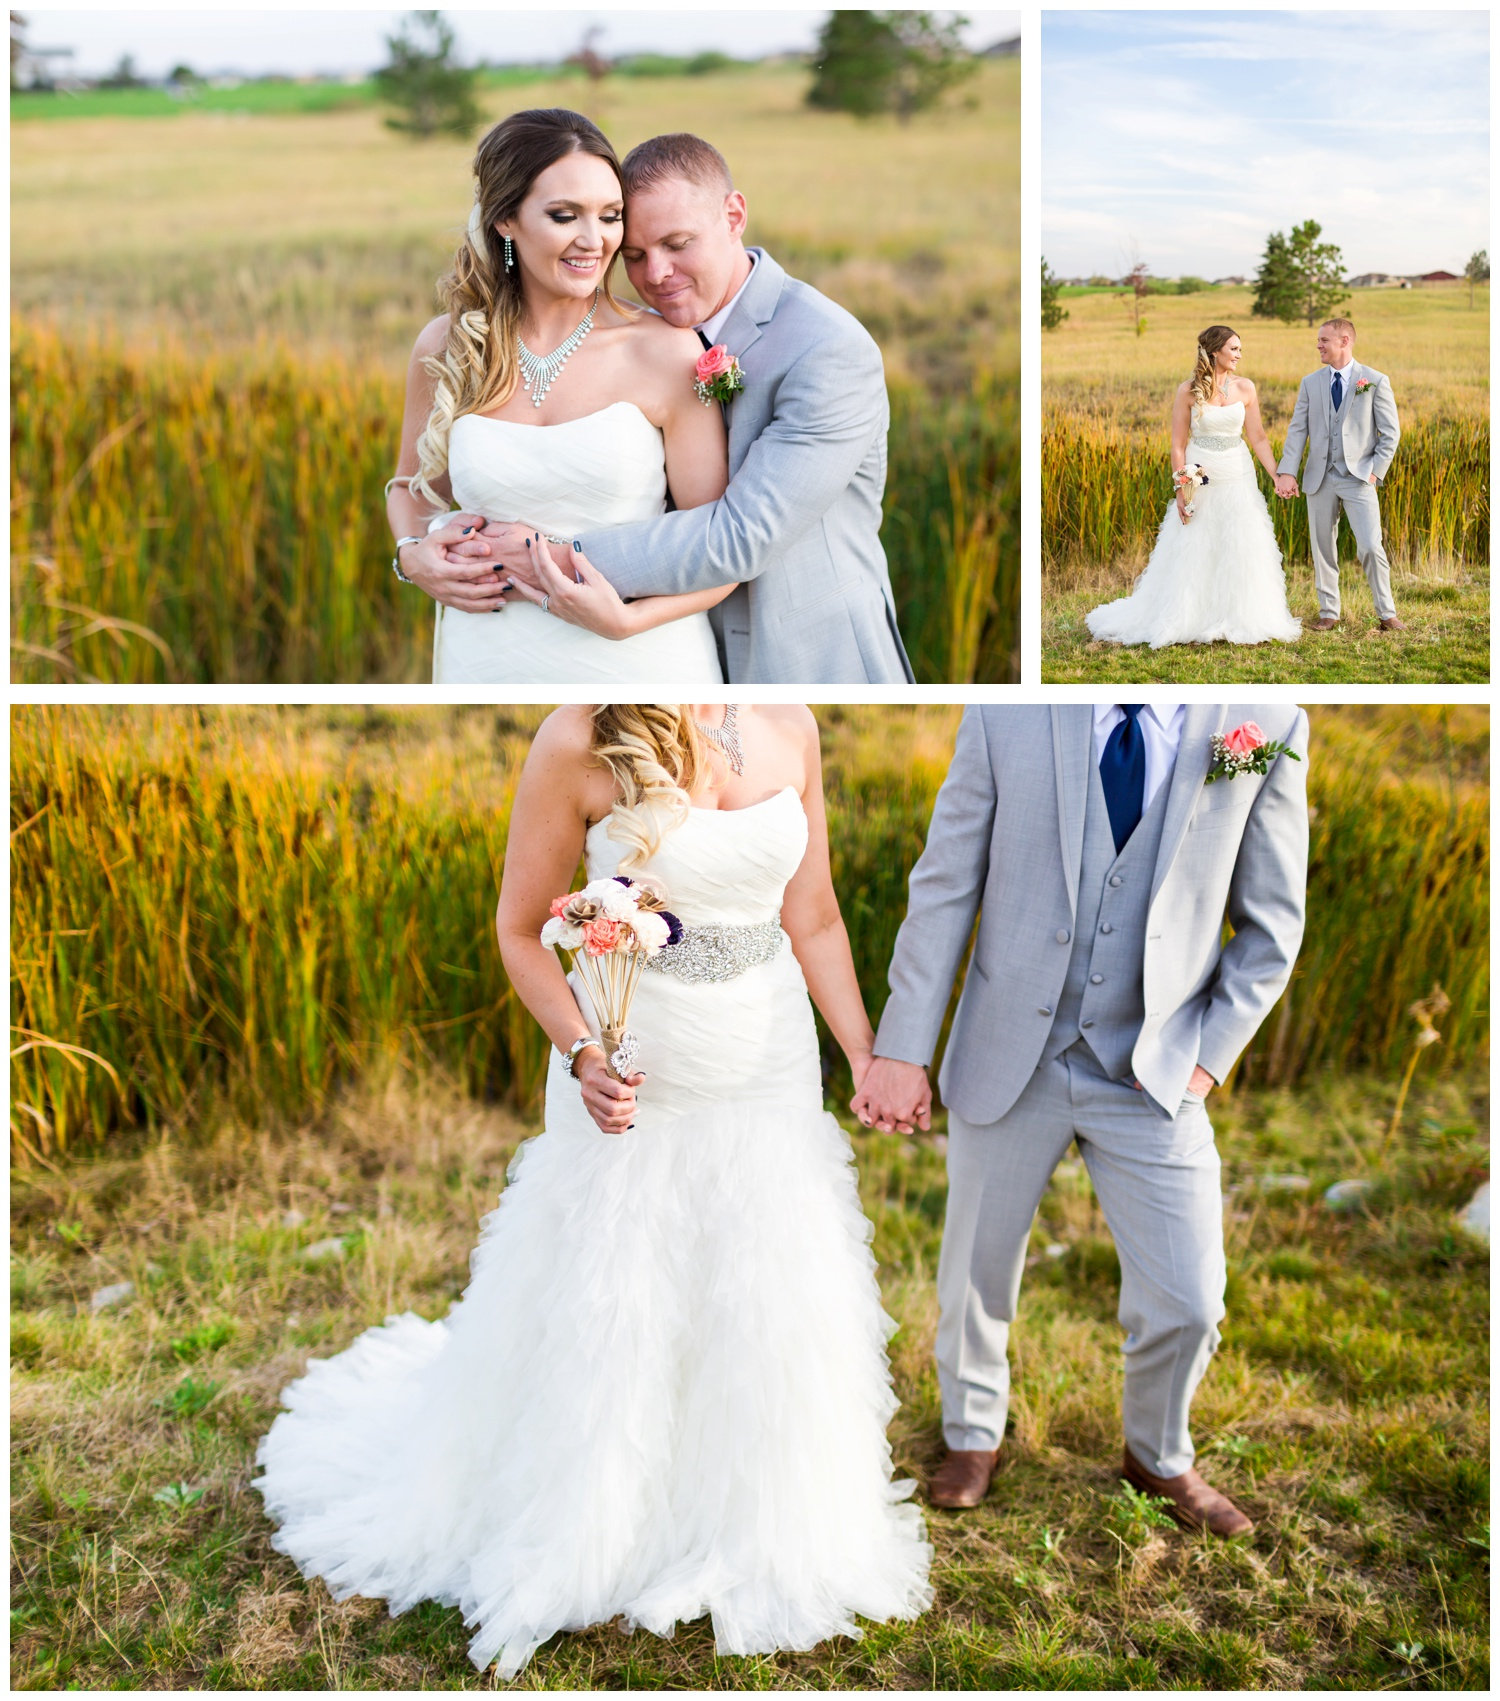 highland meadows wedding photography19.jpg